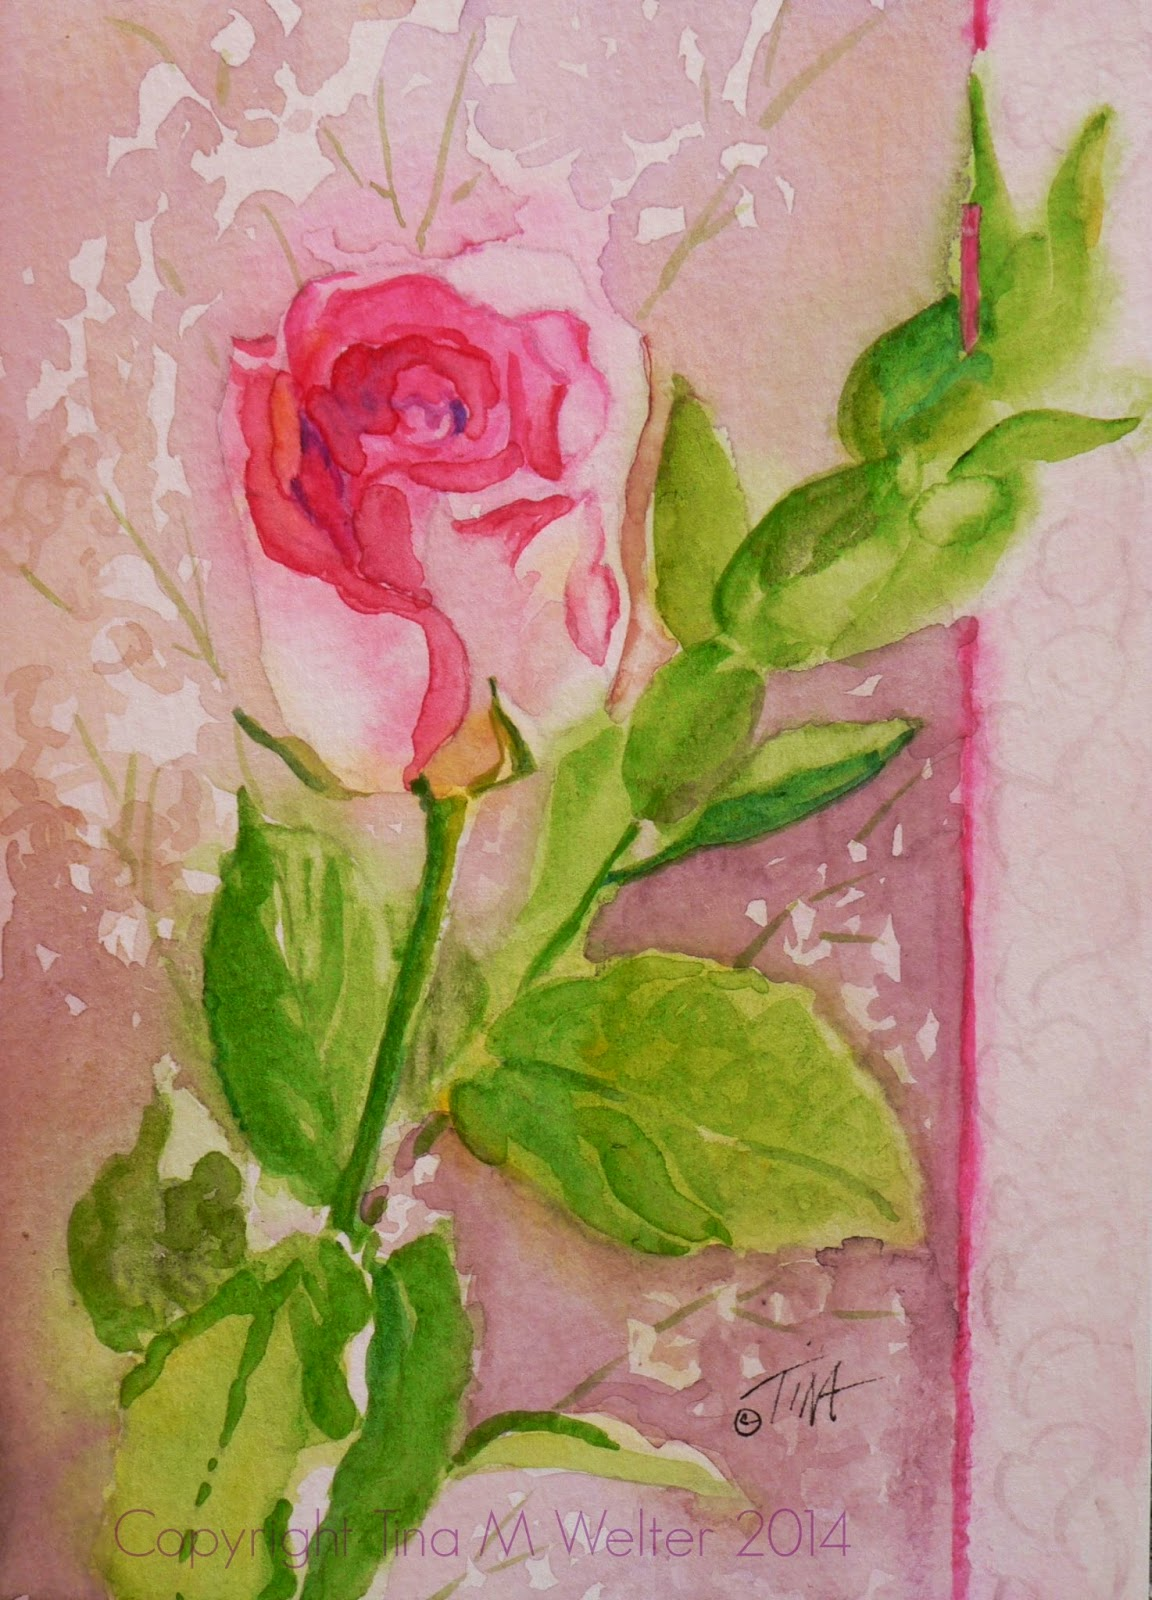 """In the Pink"" 7""x 5"" watercolor on paper, copyright Tina M Welter 2014"